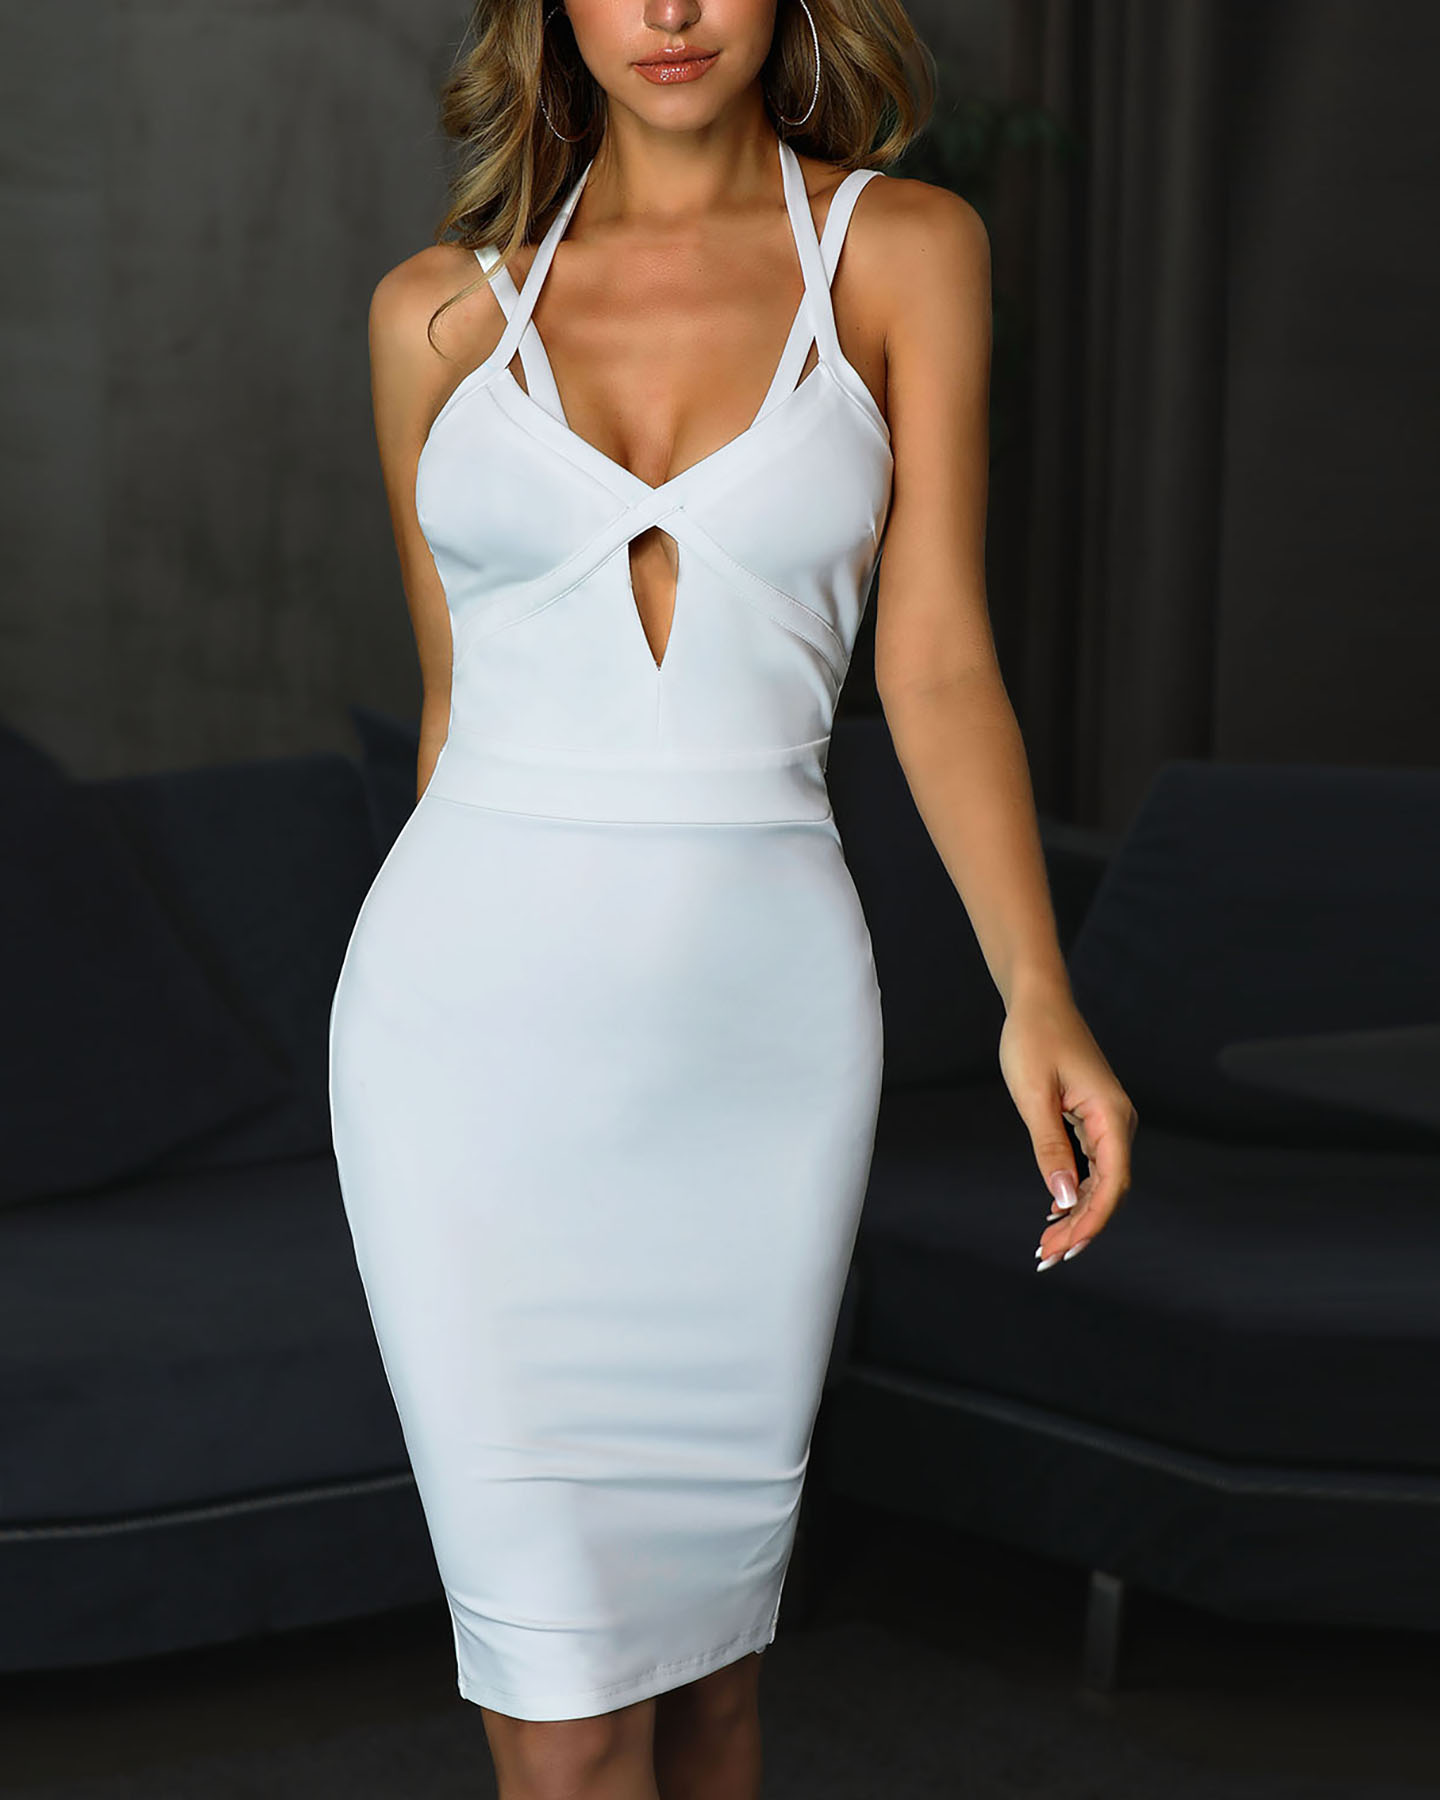 Halter Spaghetti Strap Cutout Bodycon Dress